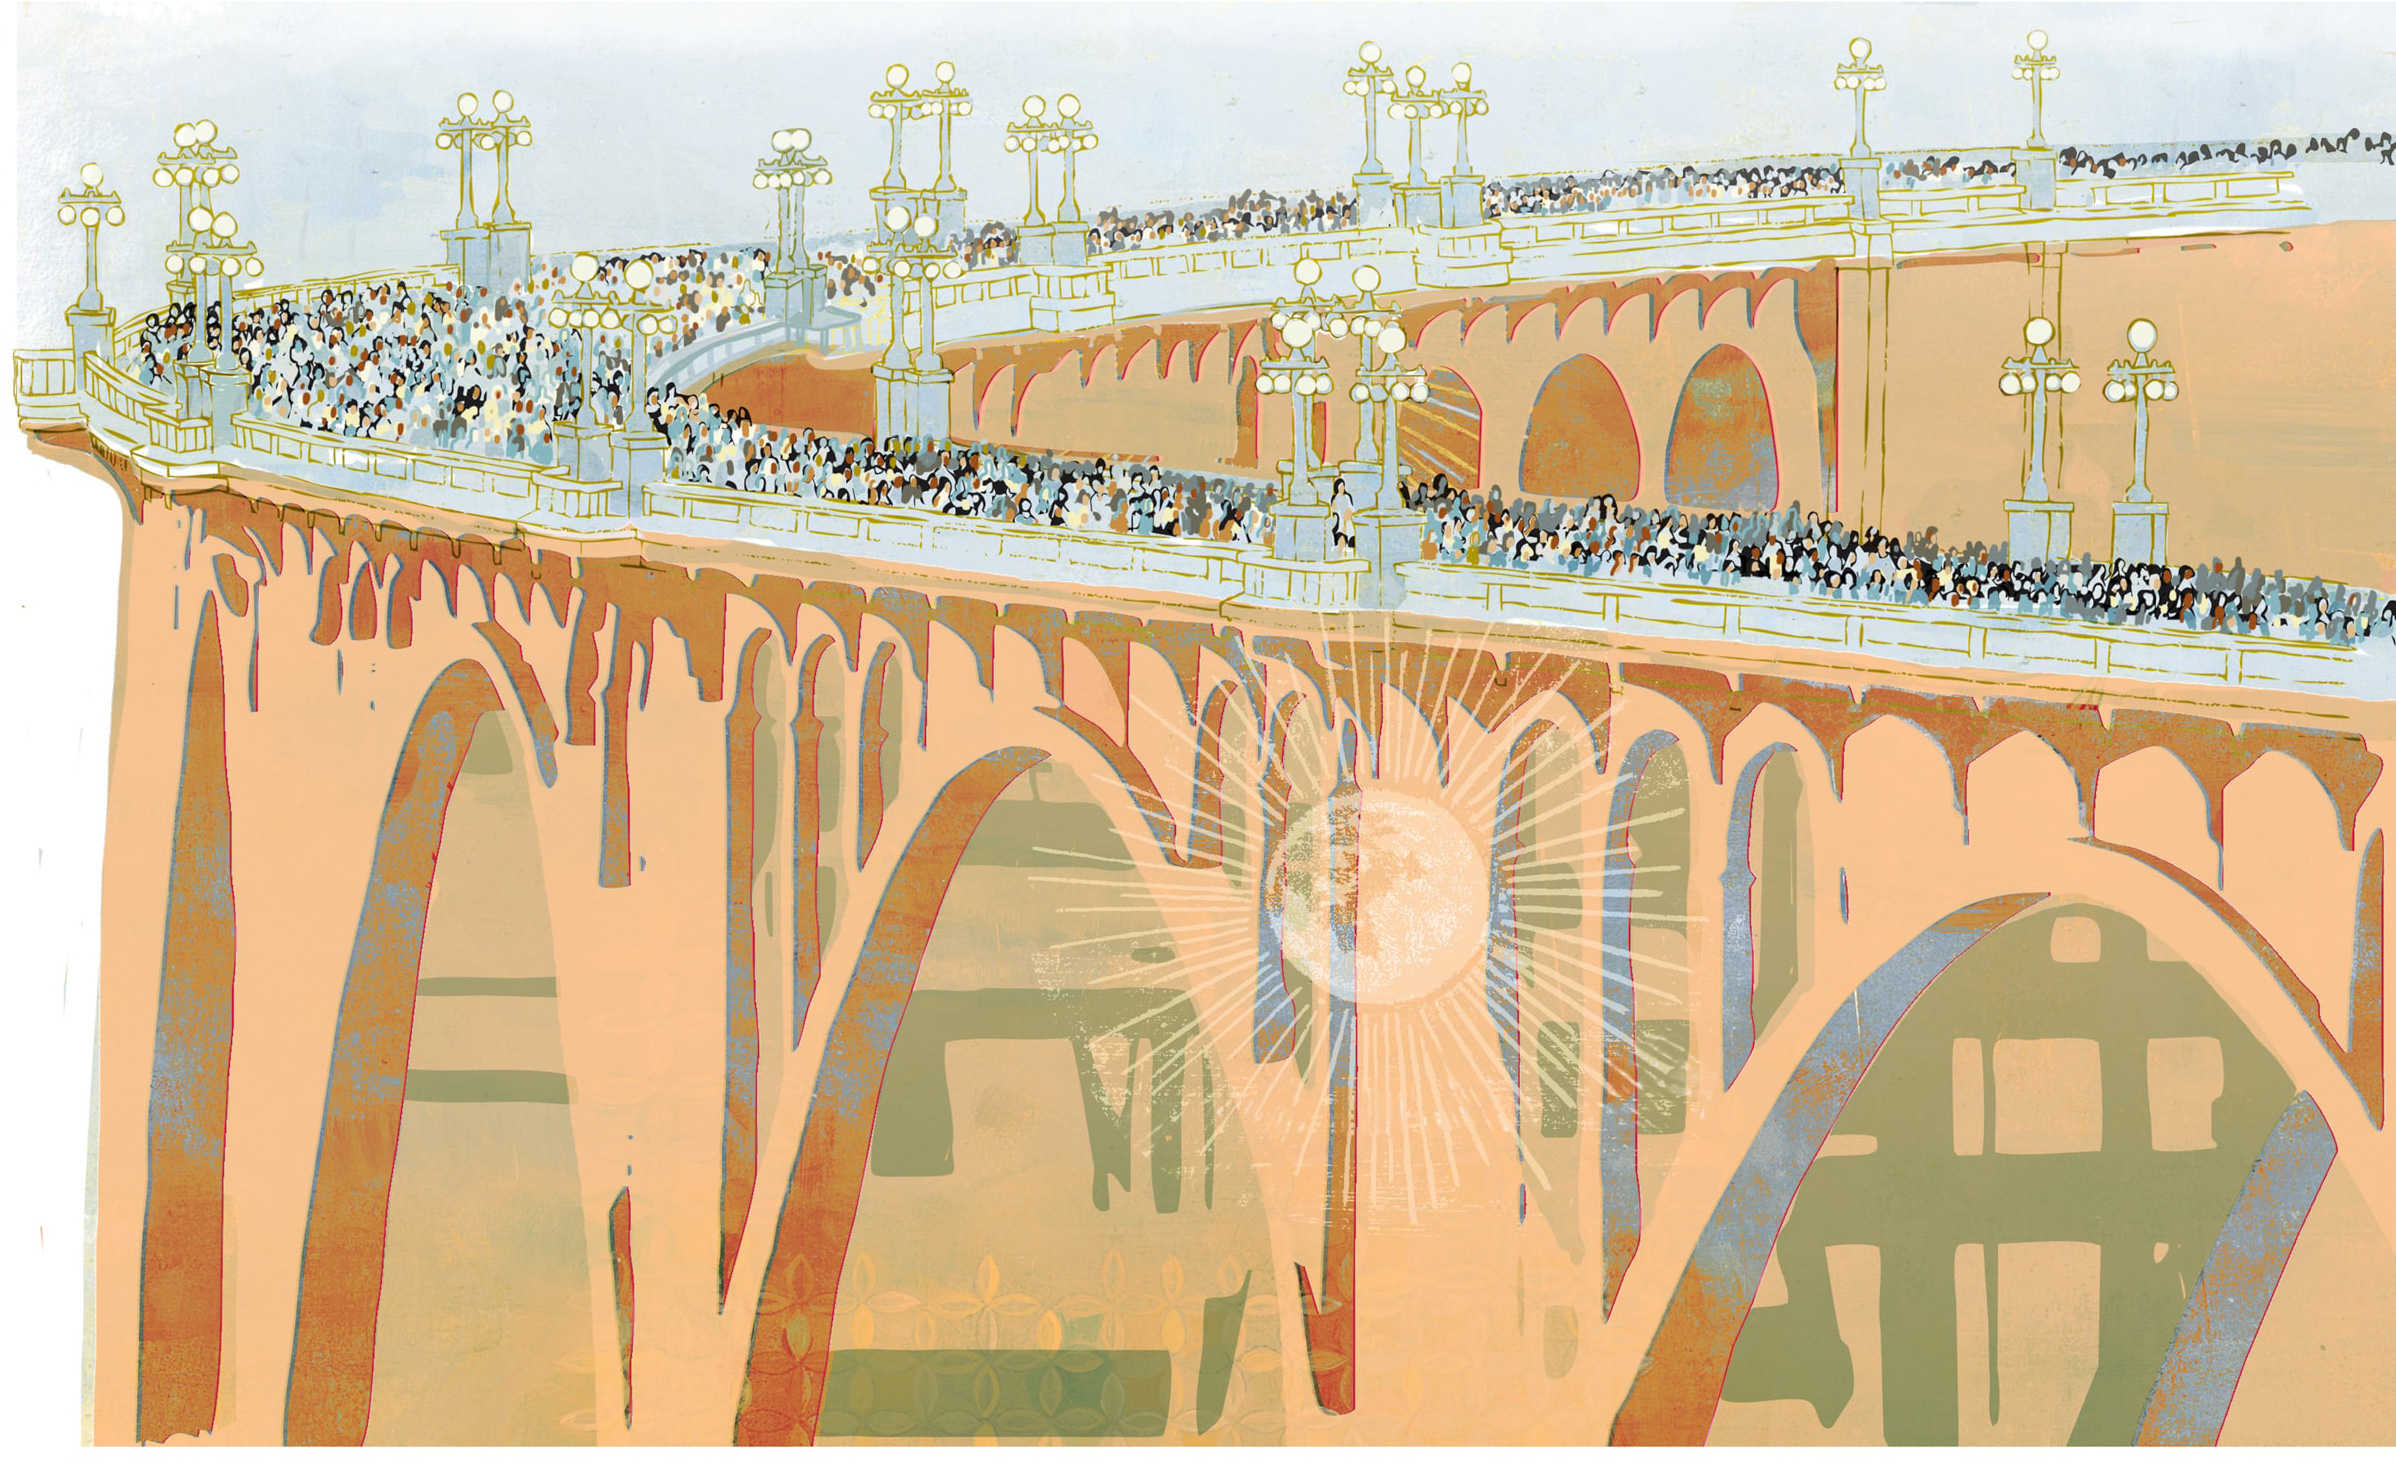 fullermag-theology-pasadena-bridge-illustration